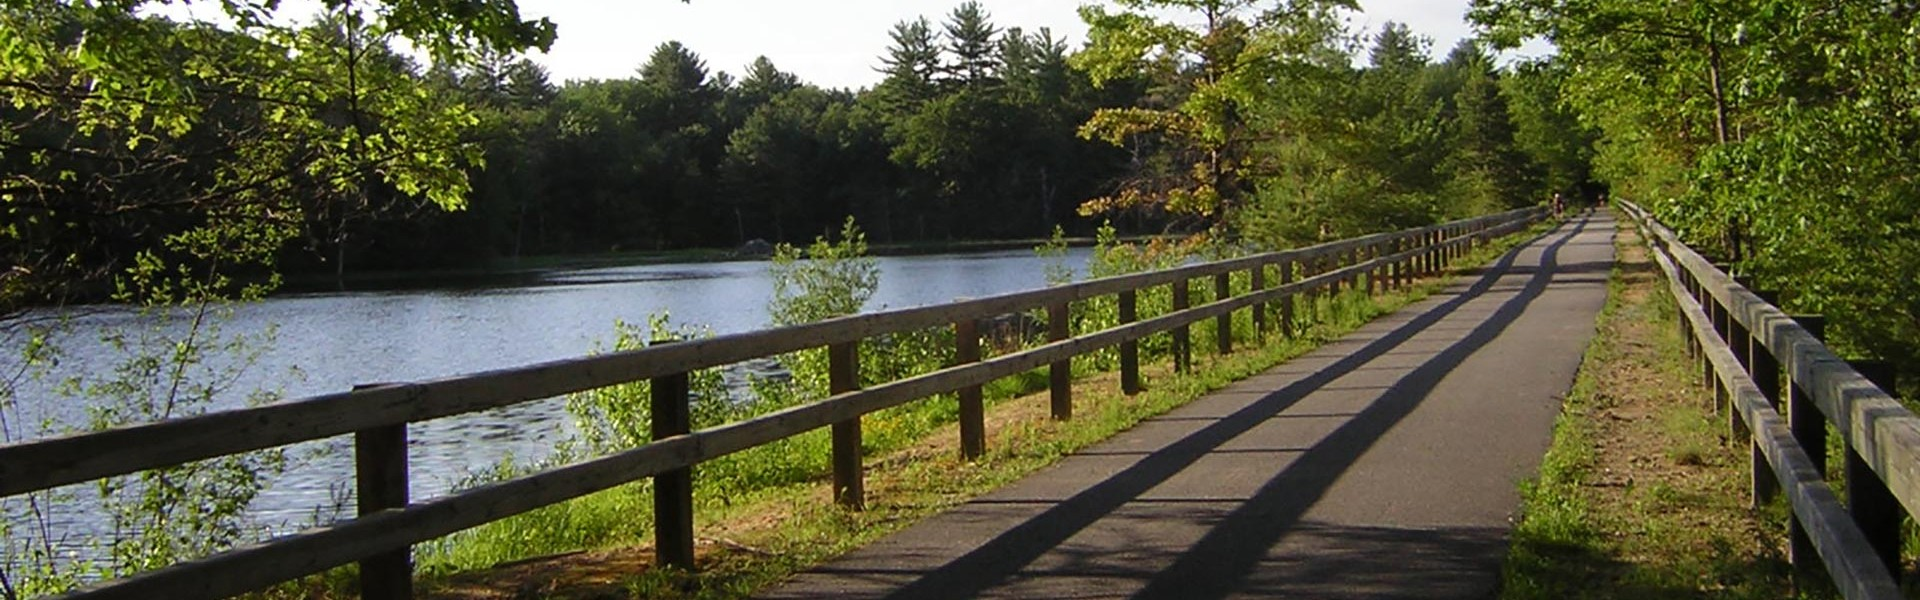 Paved walking trail beside a river